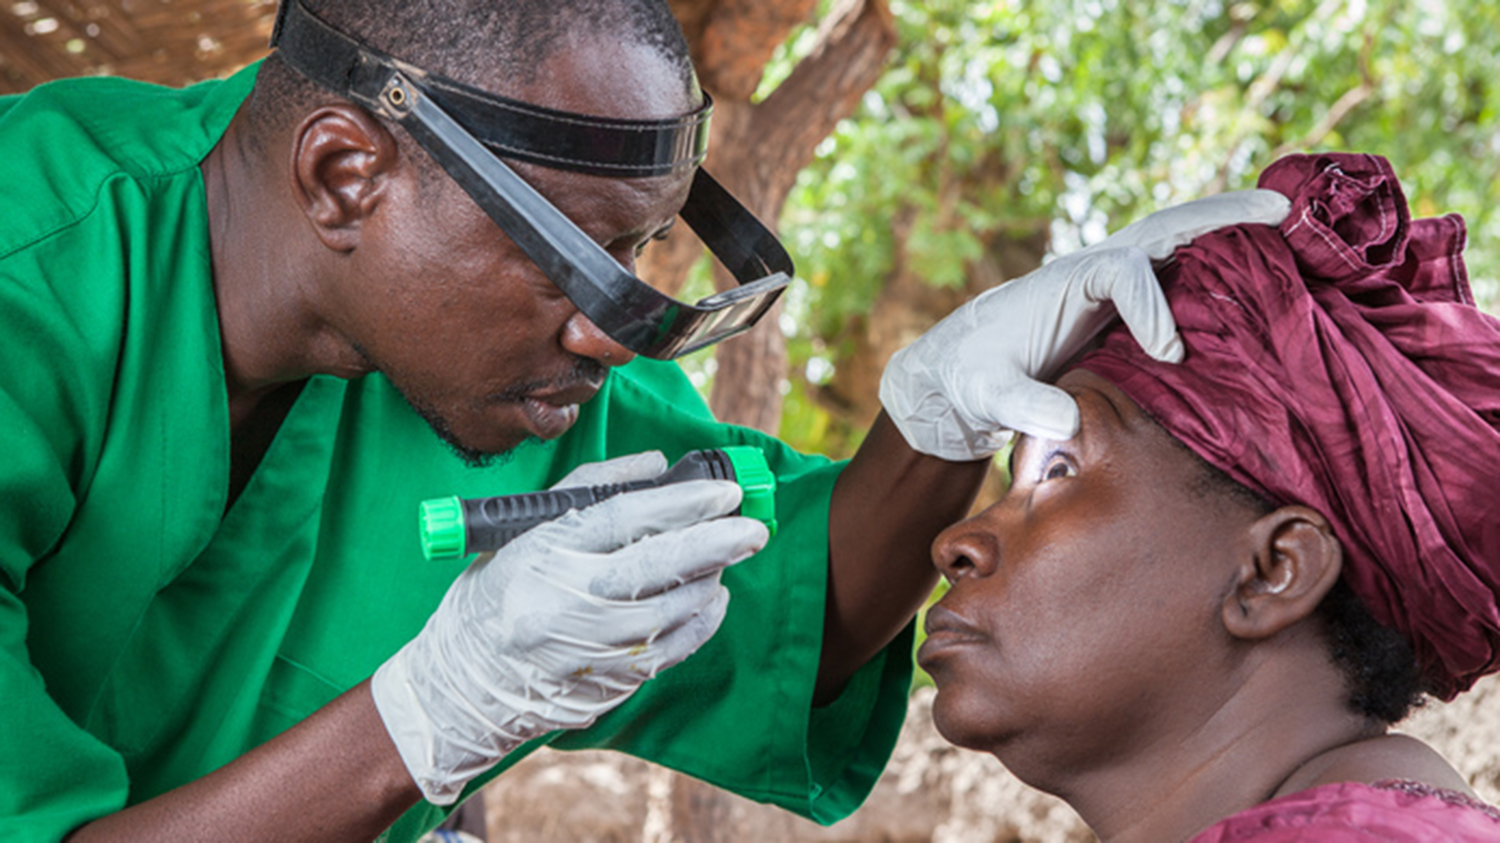 Surgeon, Boubacar Fomb, leans over and examines a lady, Assetou Diakite, using a light, shining into her eye. The surgeon is wearing green and the patient is wearing a matching red top and headscarf.